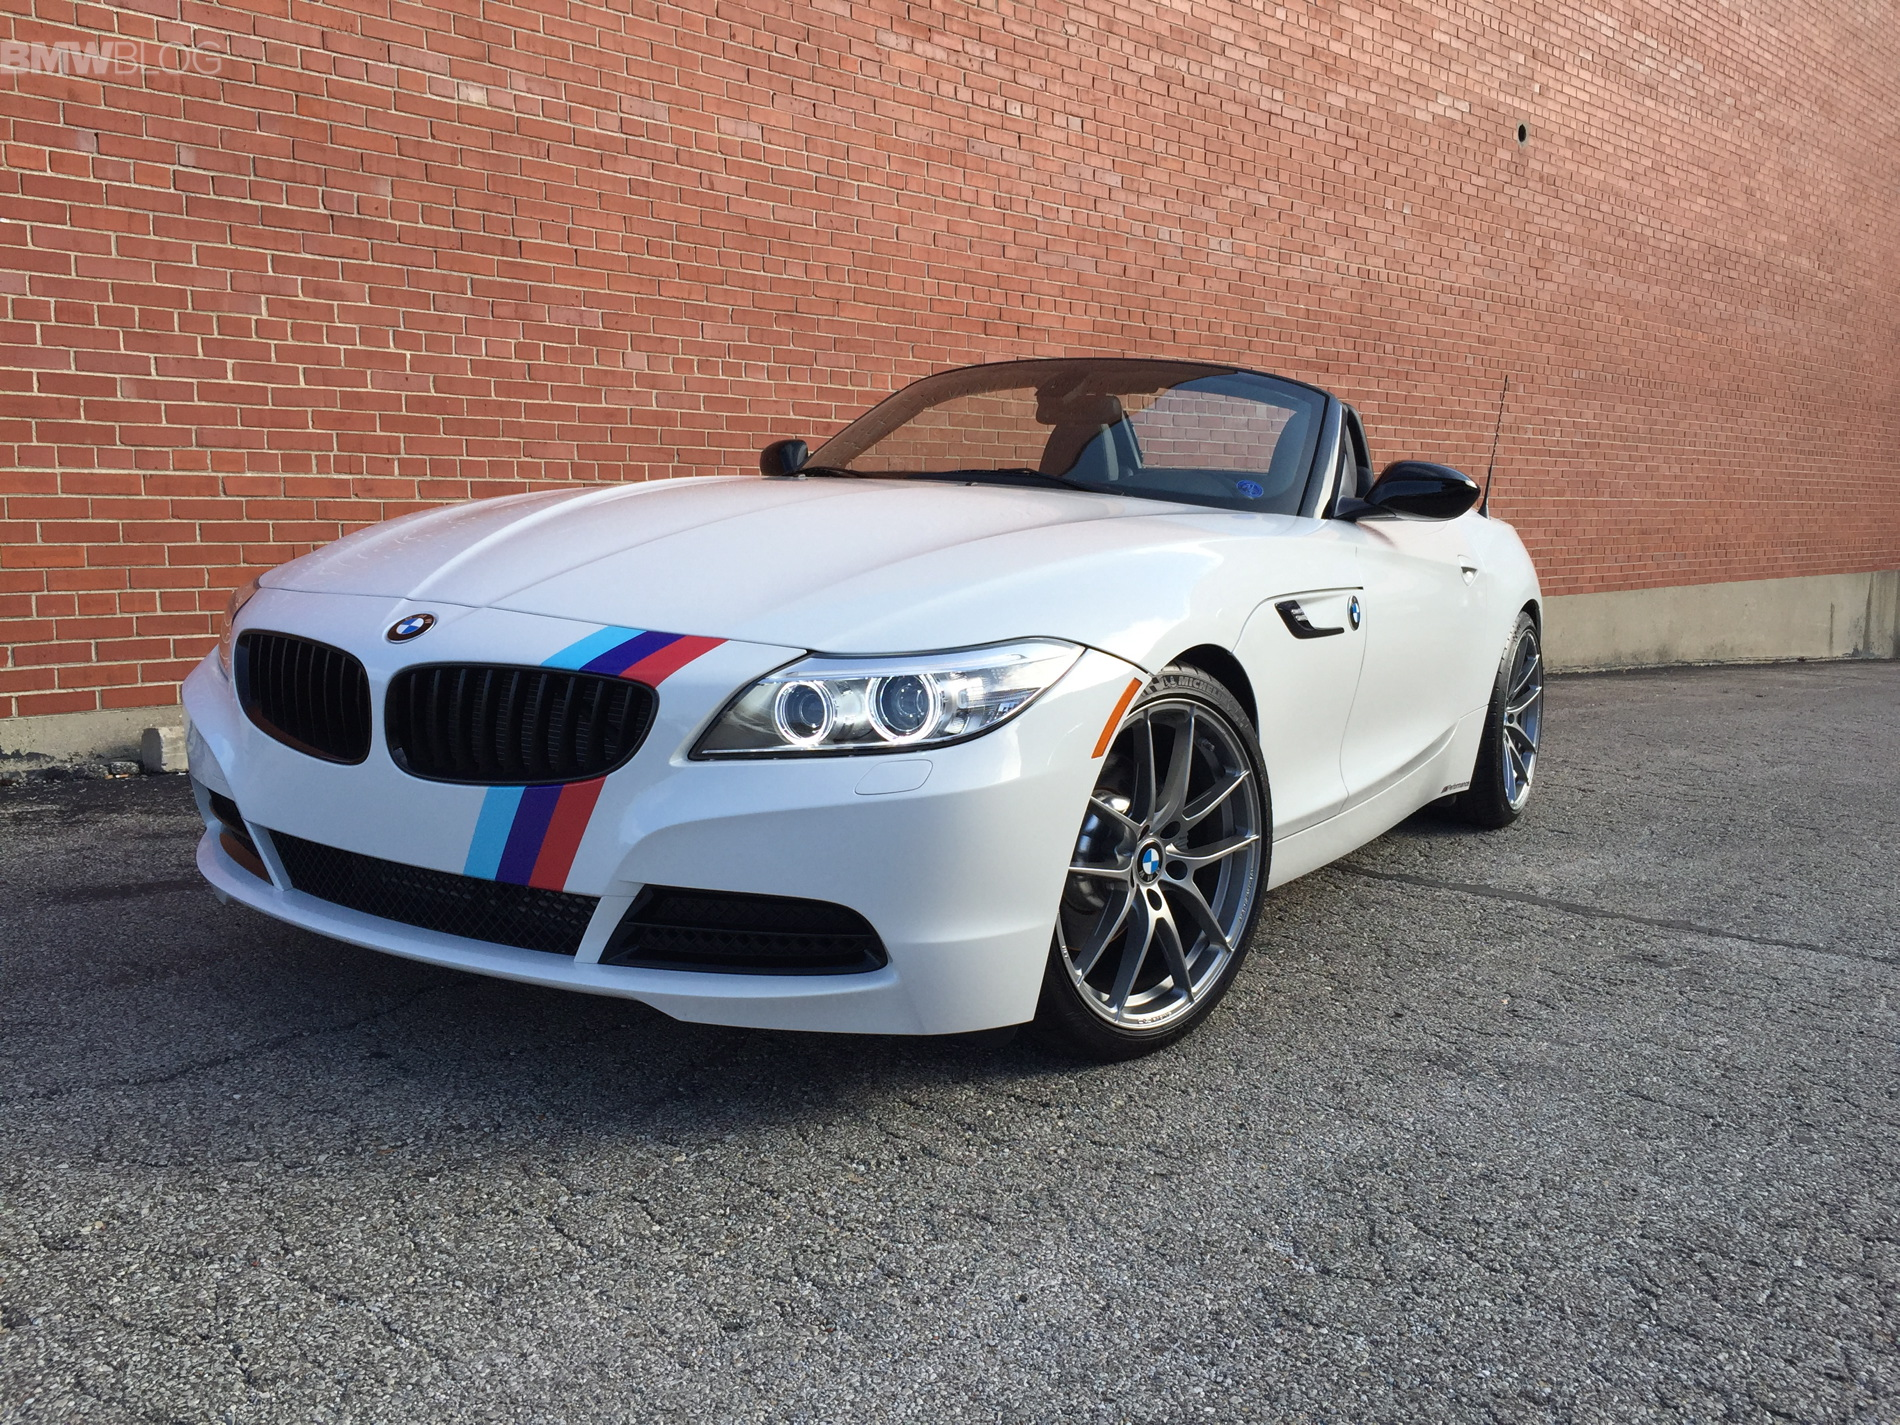 Isringhausen Bmw And Dinan Give This 2015 Bmw Z4 Over 400 Horsepower